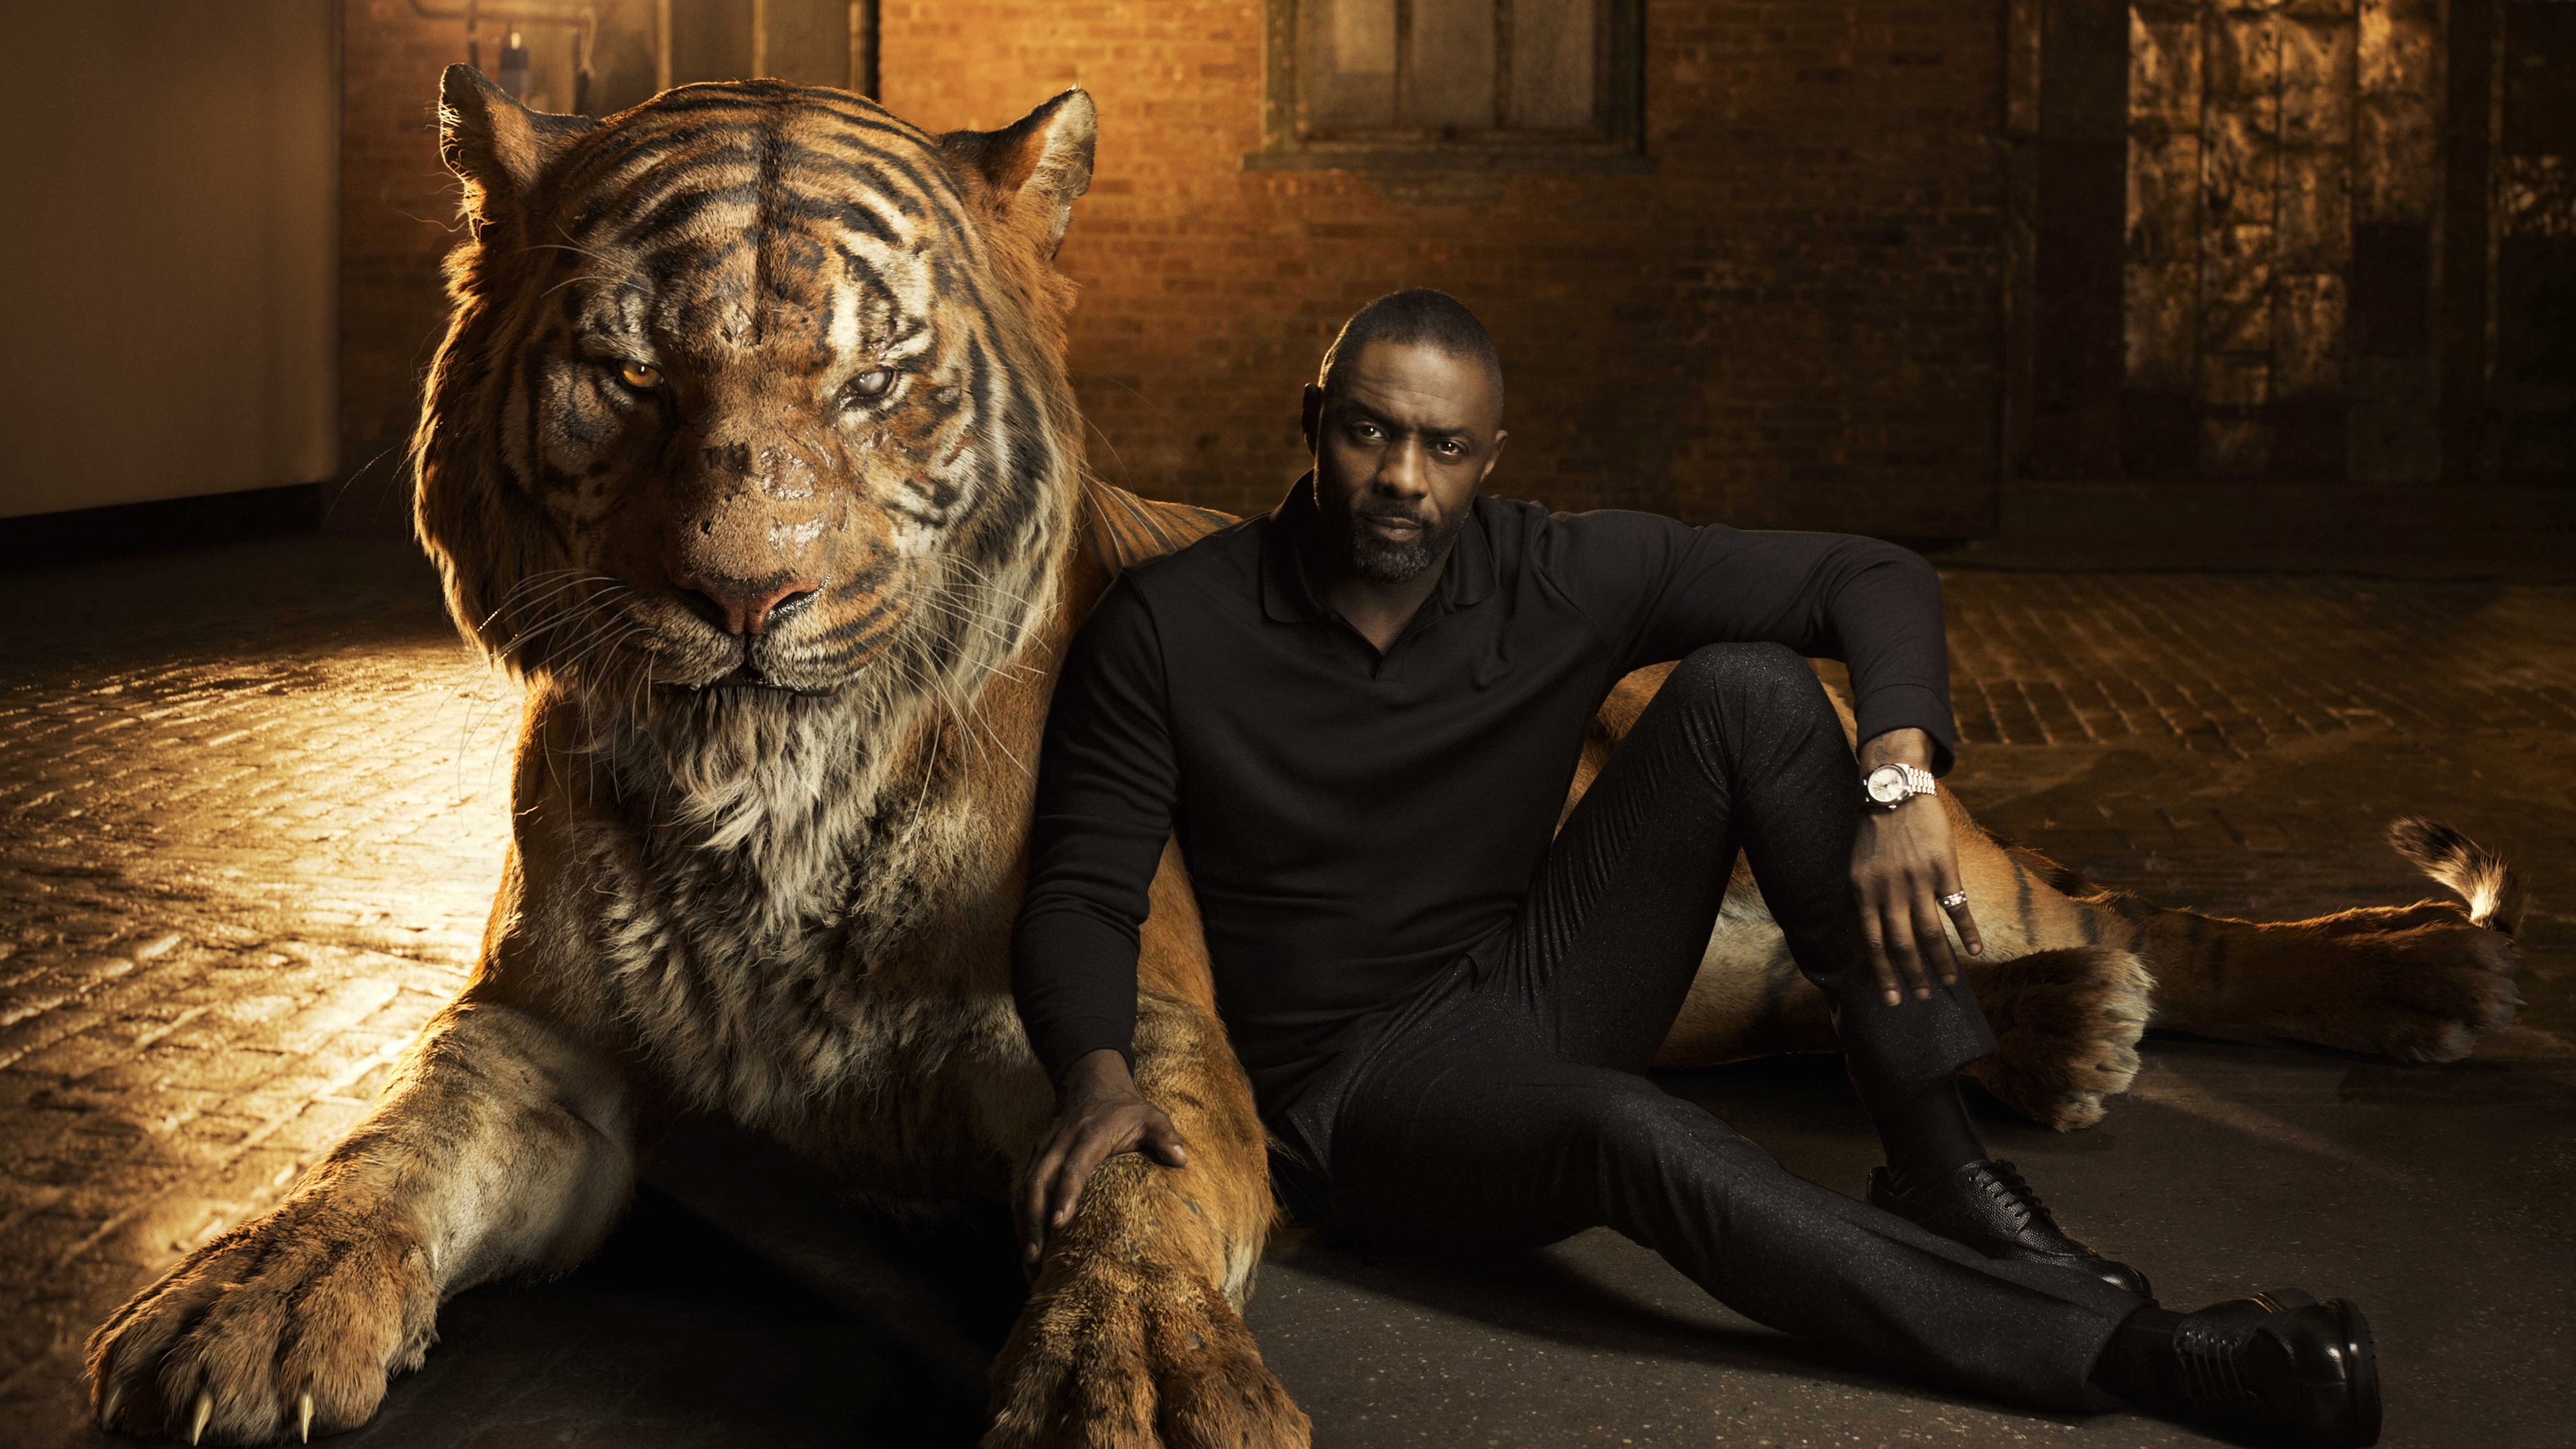 idris elba shere khan the jungle book wallpapers in jpg format for